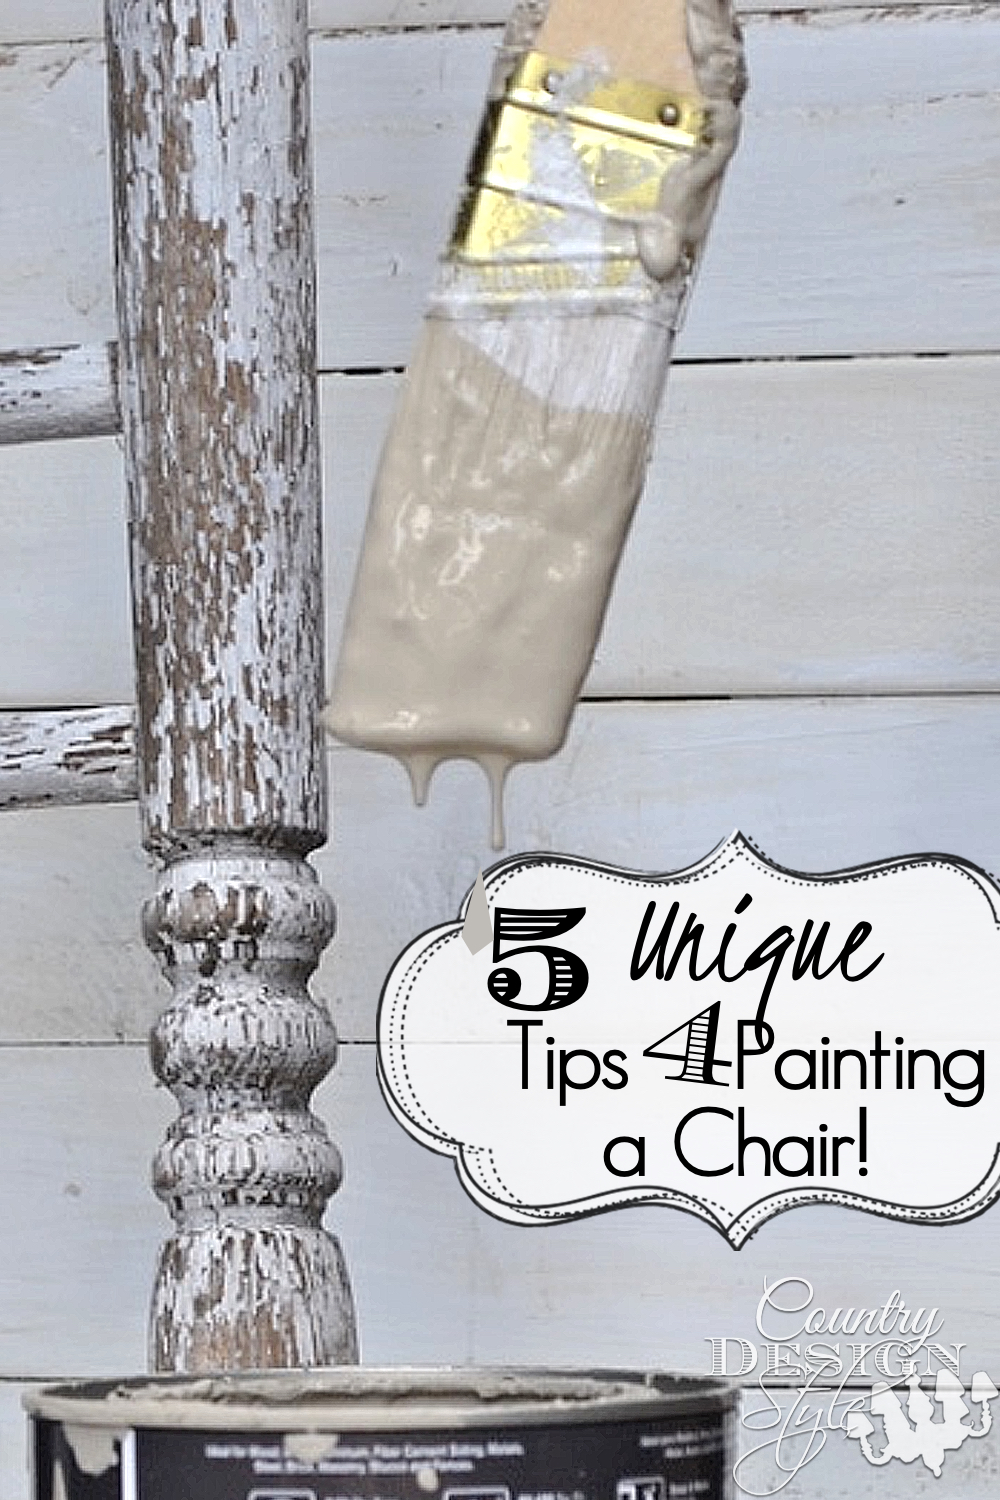 5 Chair painting tips for your diy upcycled chairs. Plus unique tips I do when painting furniture. Country Design Style